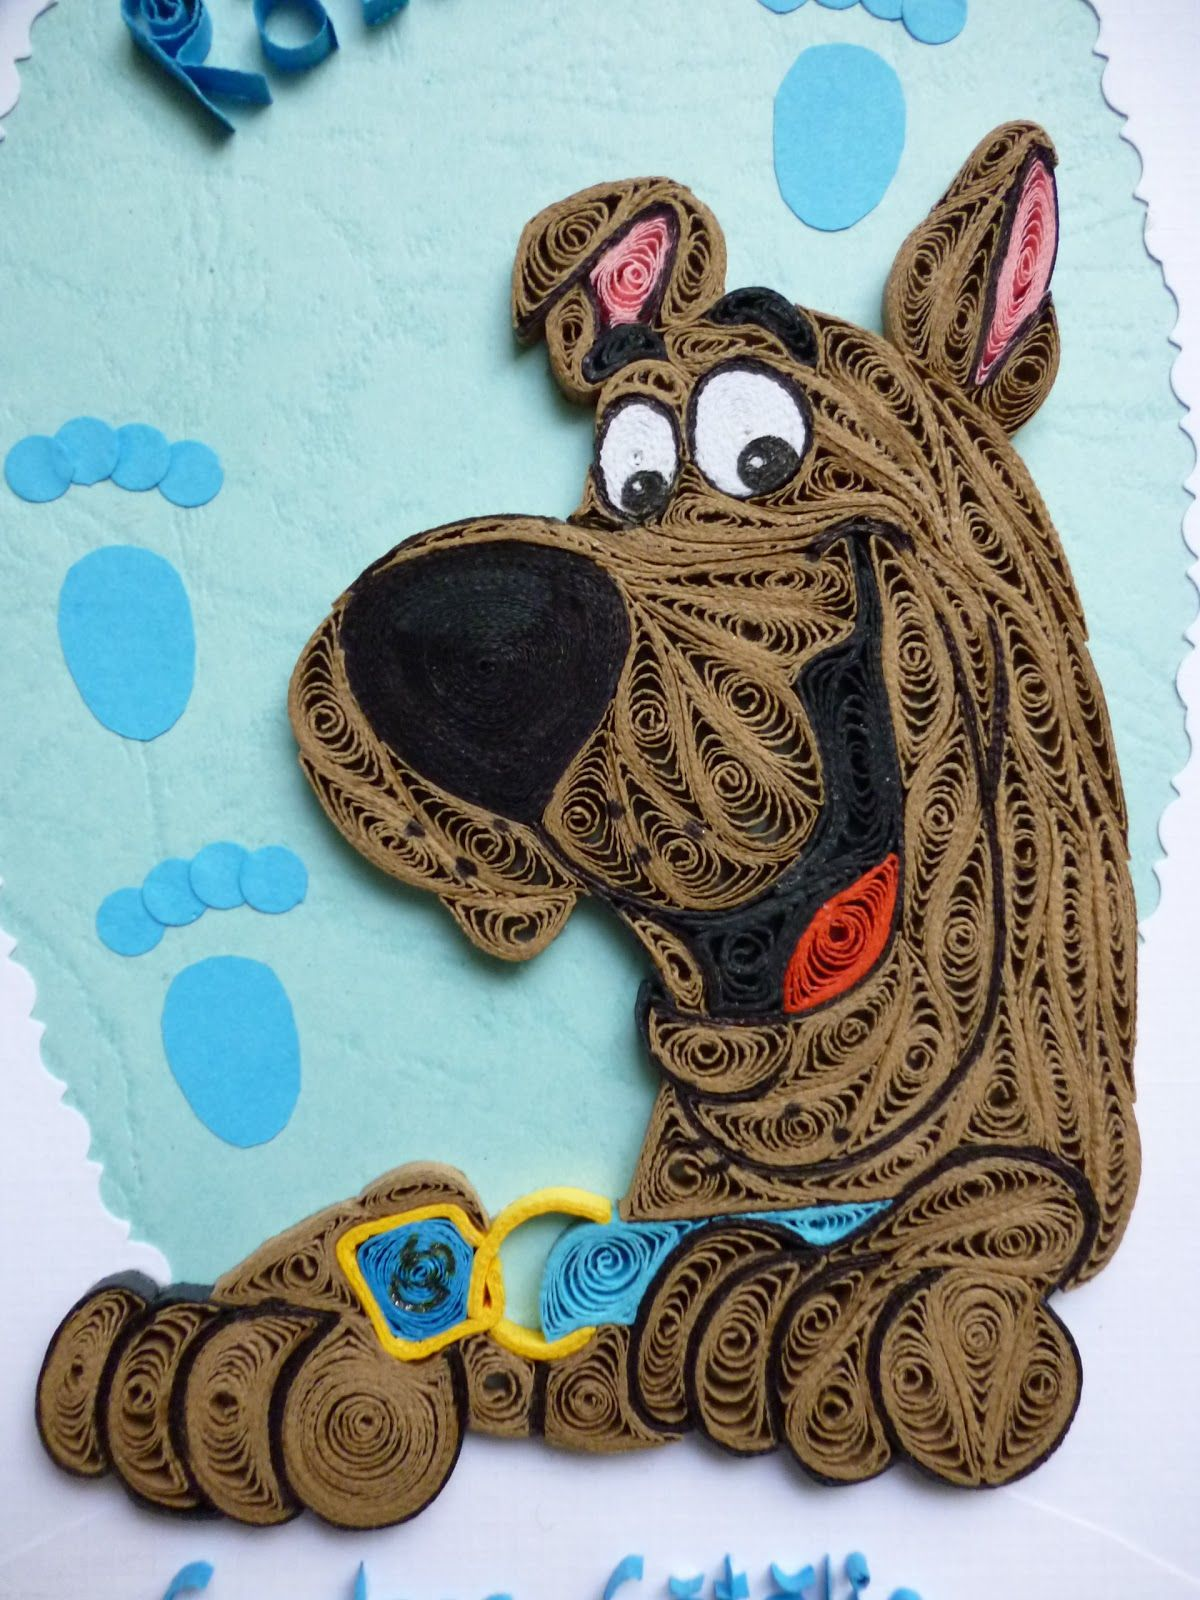 Papírvilág Quilled Scooby Doo Quilling Scooby Doo Quilling